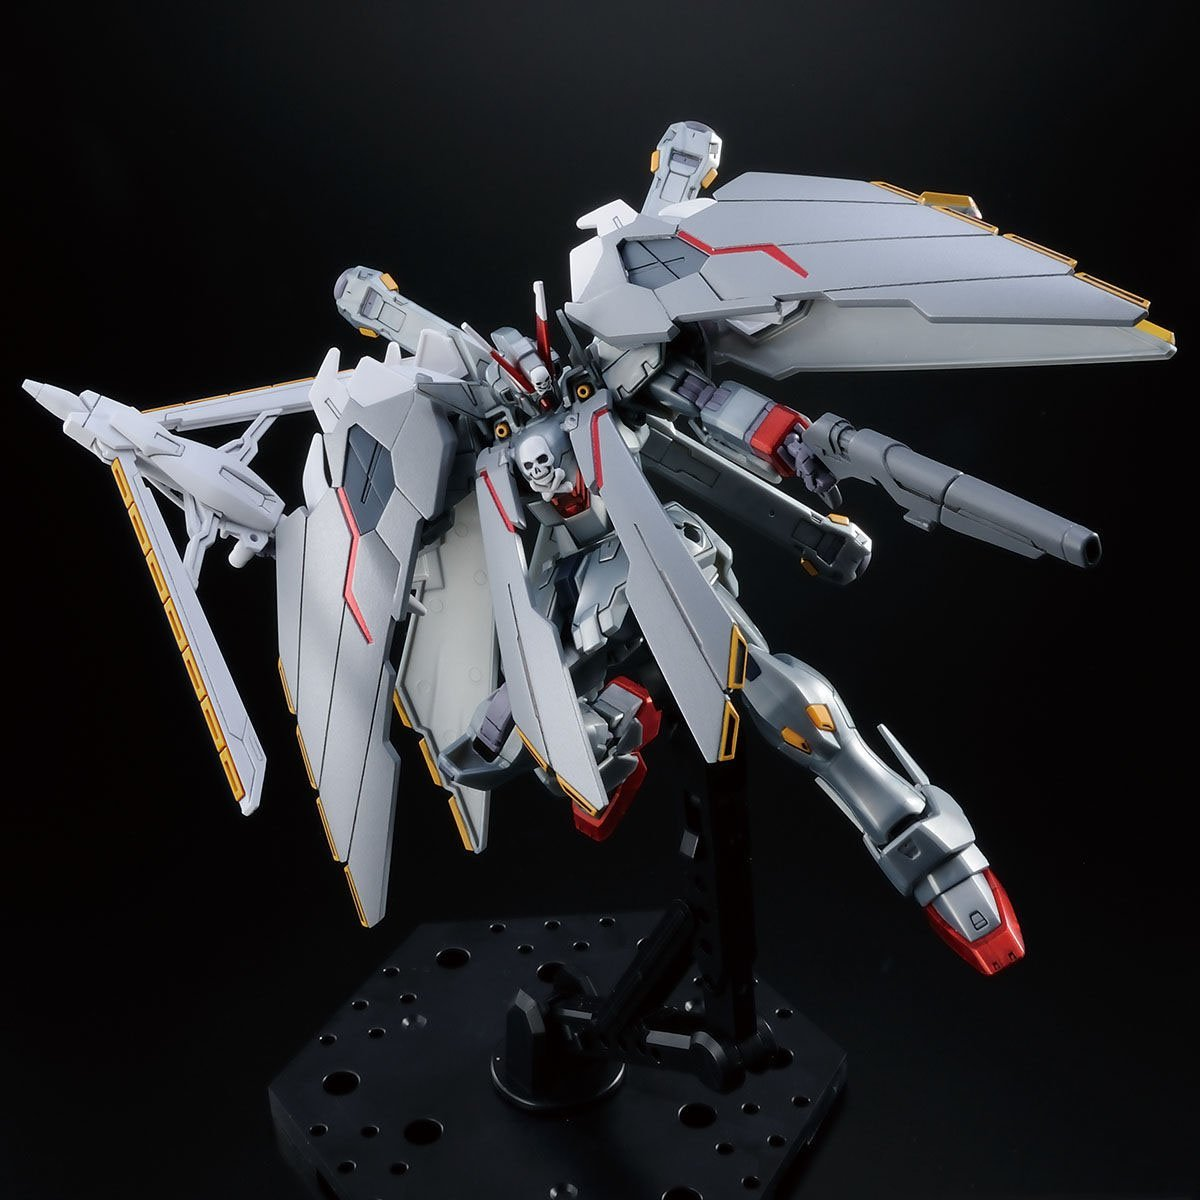 This gundam unicorn is the first model that transforms on its own & speaks lines from the anime